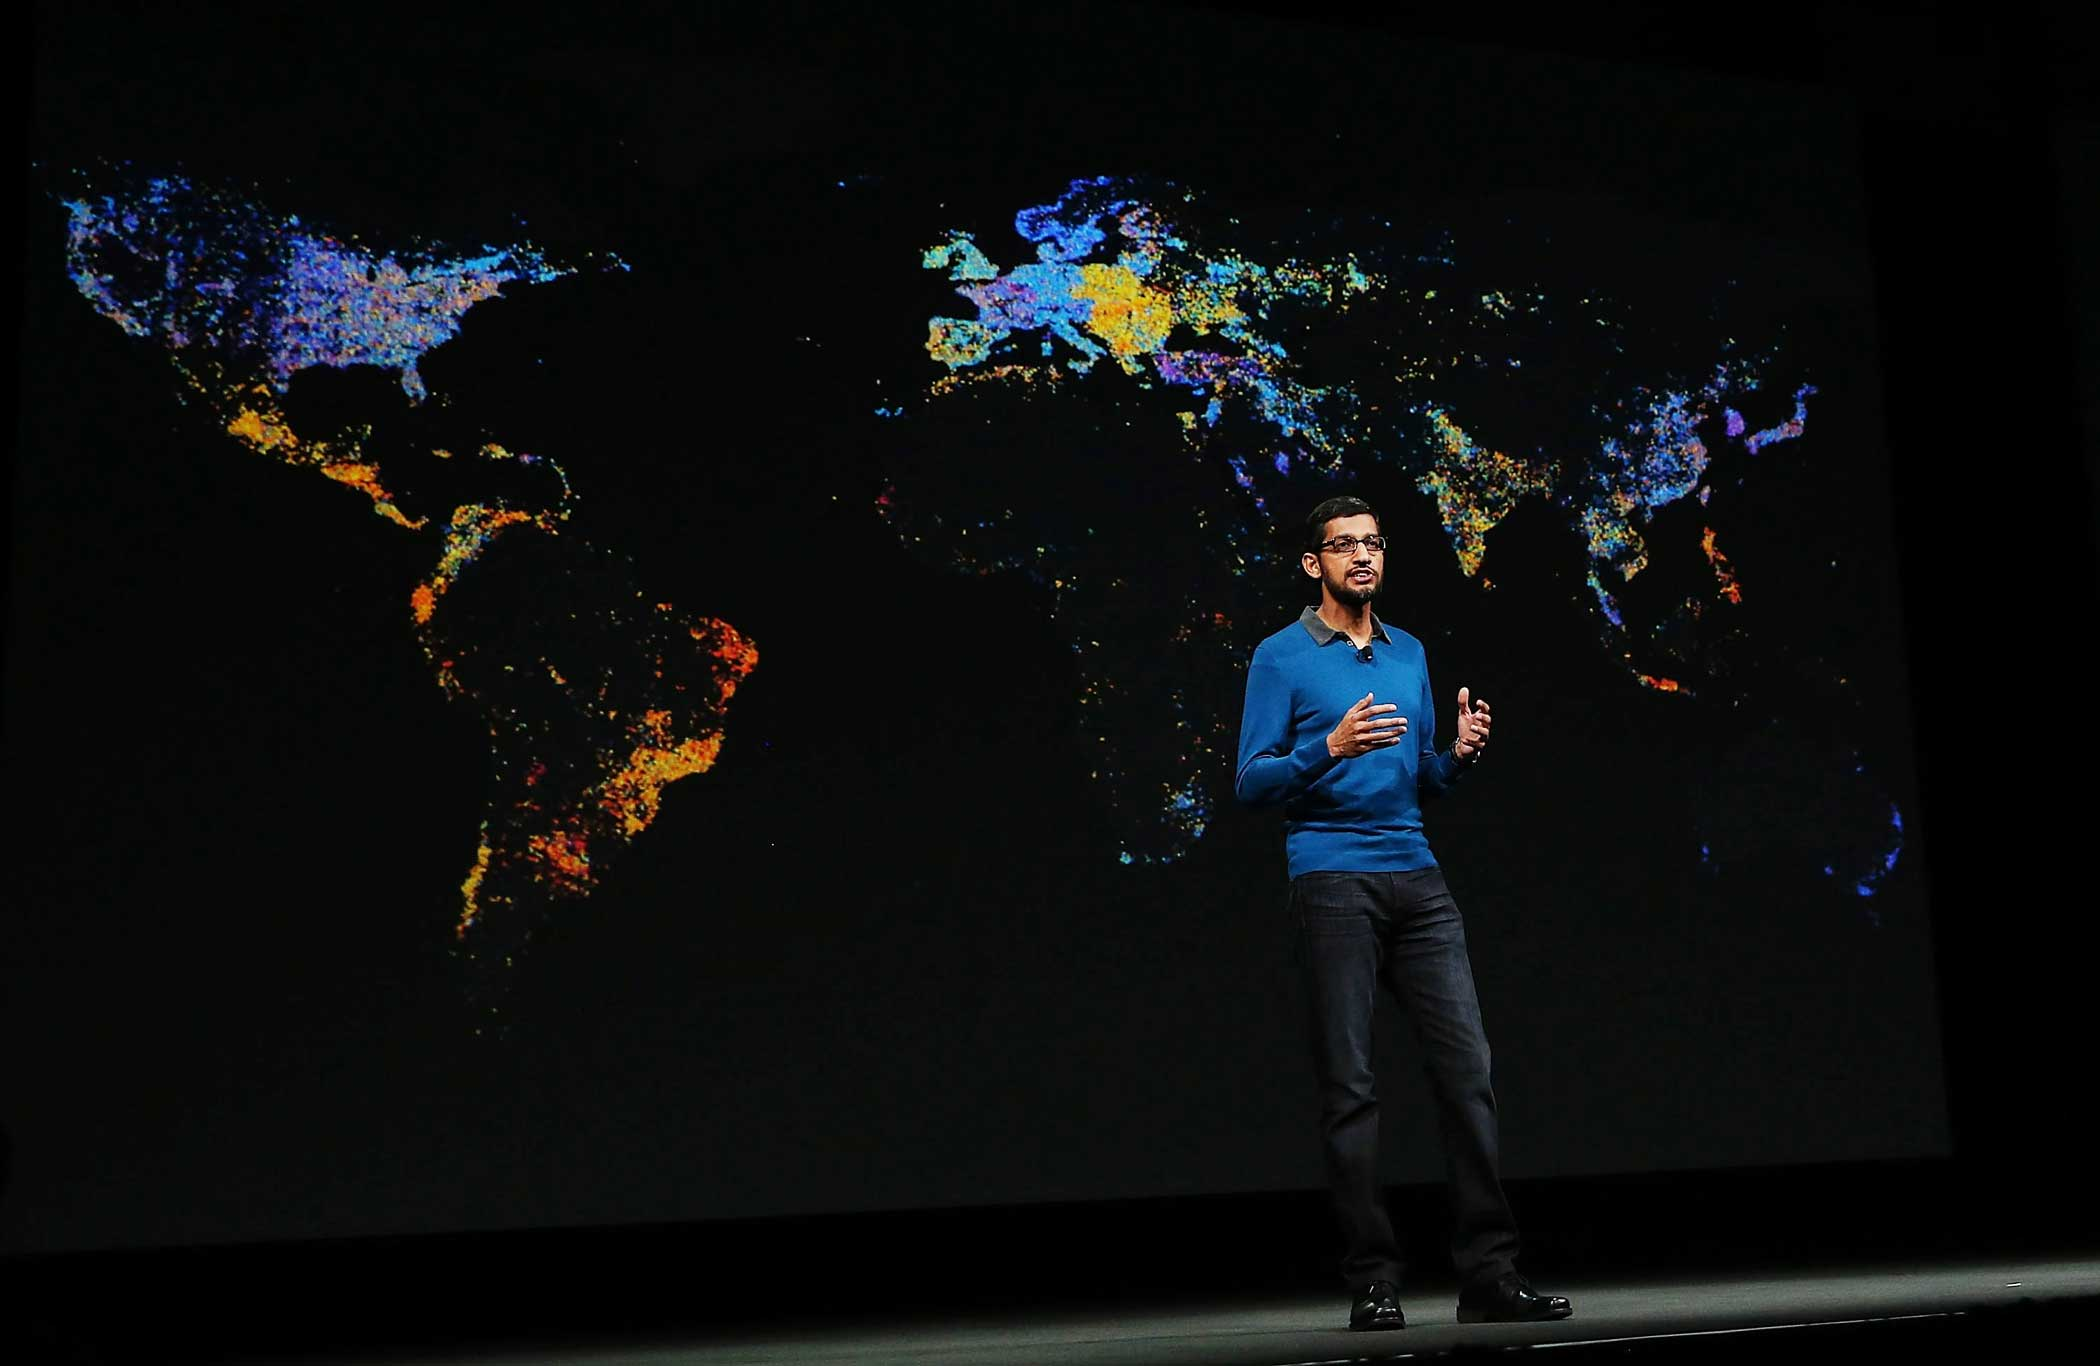 Google senior vice president of product Sundar Pichai delivers the keynote address during the 2015 Google I/O conference on May 28, 2015 in San Francisco.